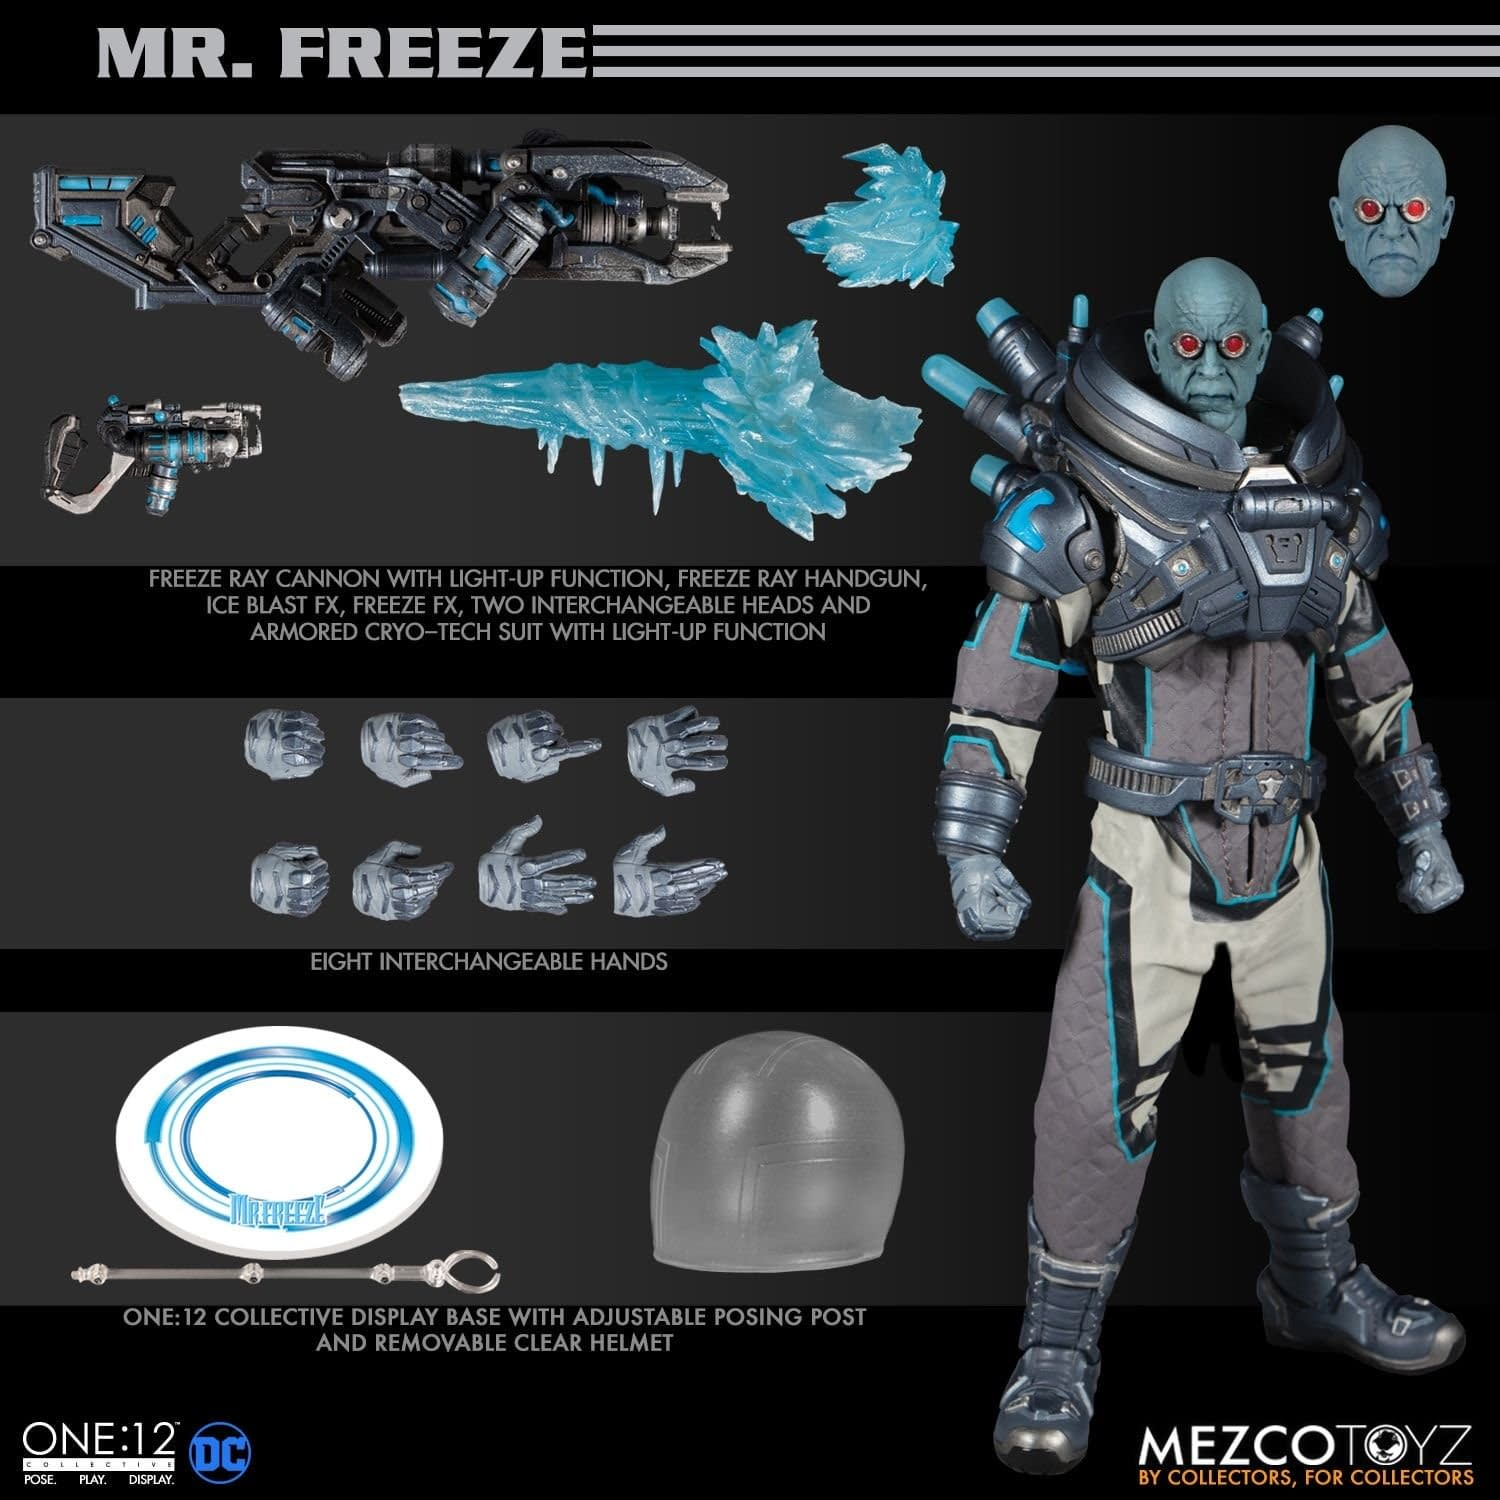 Mr. Freeze One:12 Collective Figure from Mezco Toyz